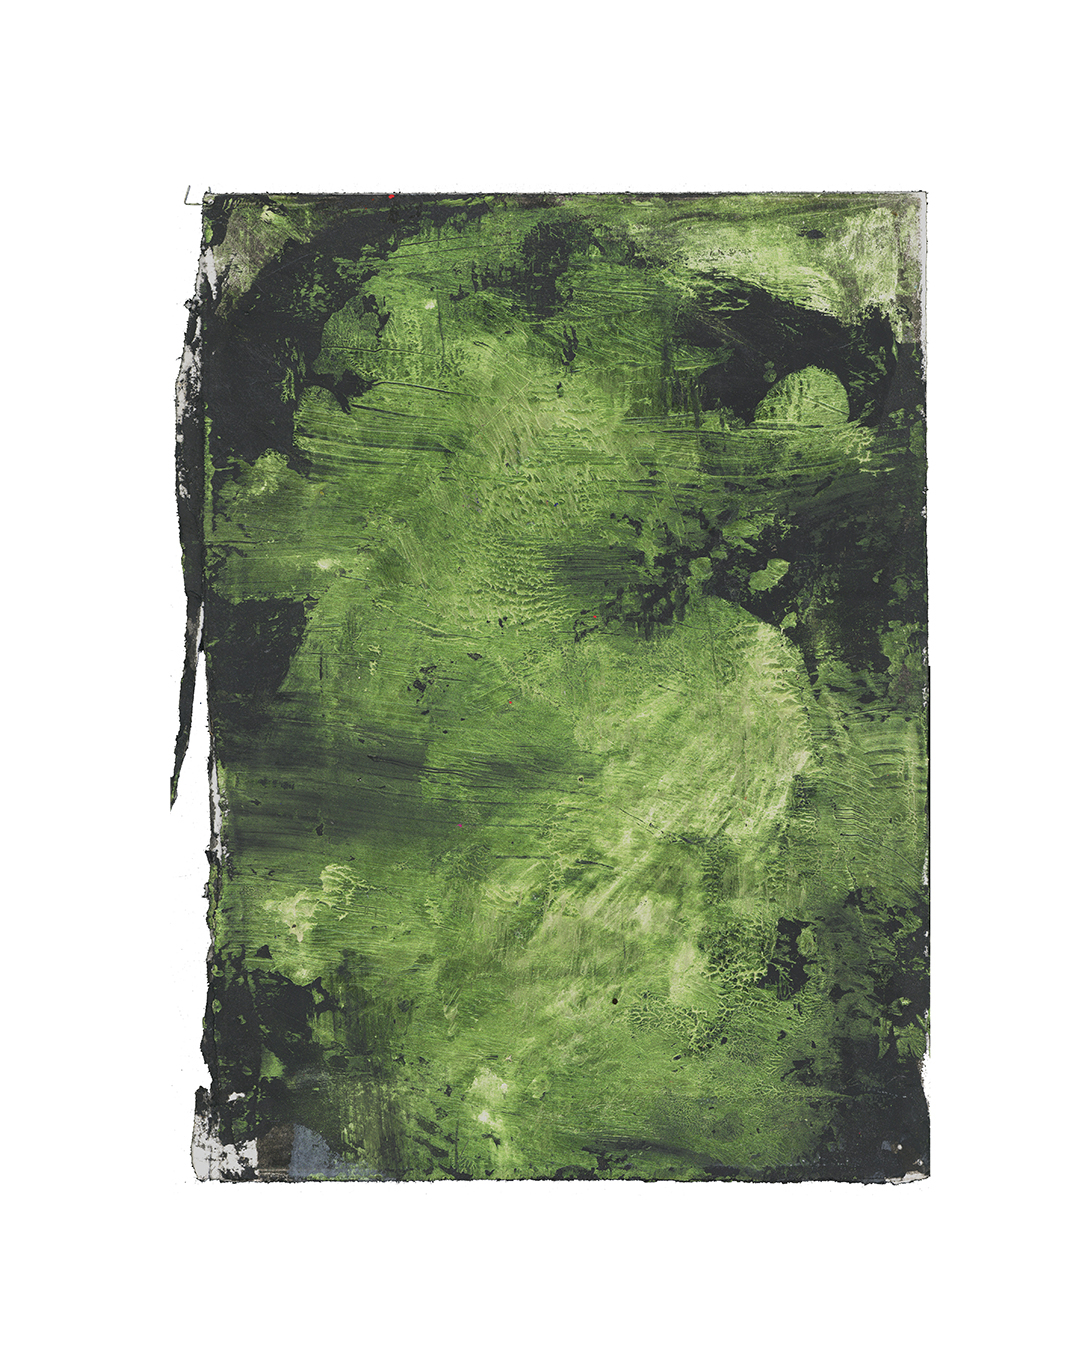 Piet Dieleman, untitled, 2020, painting, tempera, acrylic paint, pigment on paper, 395 x 285 mm, €930Piet Dieleman, untitled, 2020, painting, tempera, acrylic paint, pigment on paper, 395 x 285 mm, €930